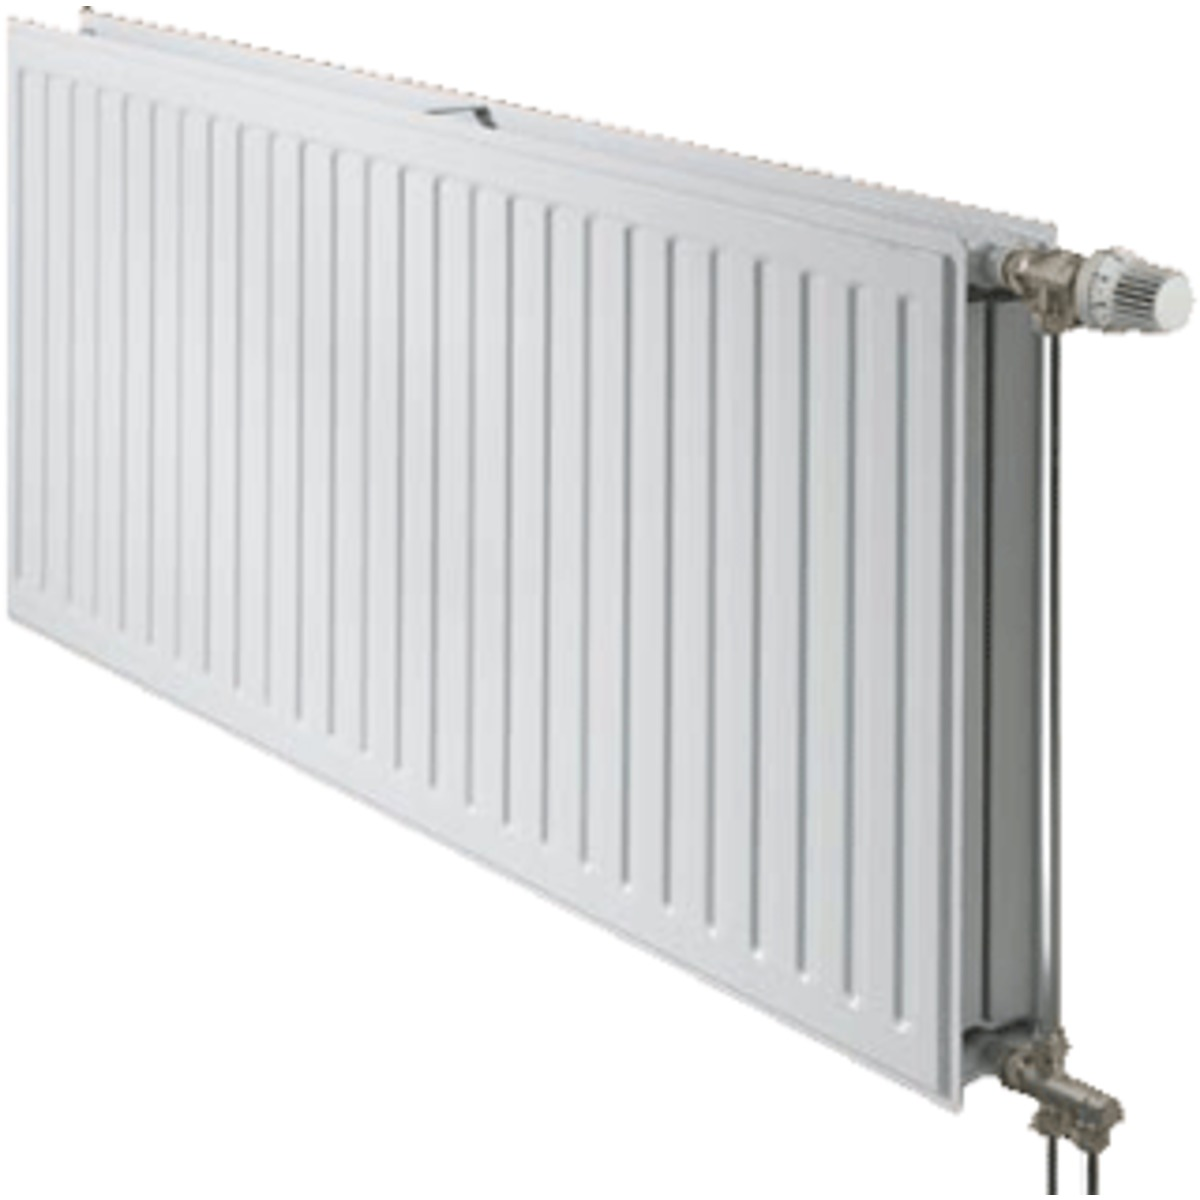 Radson Cld Radiator.Radson Cld Radiator Paneel H40xd5 5xl180cm 1269w Staal Wit